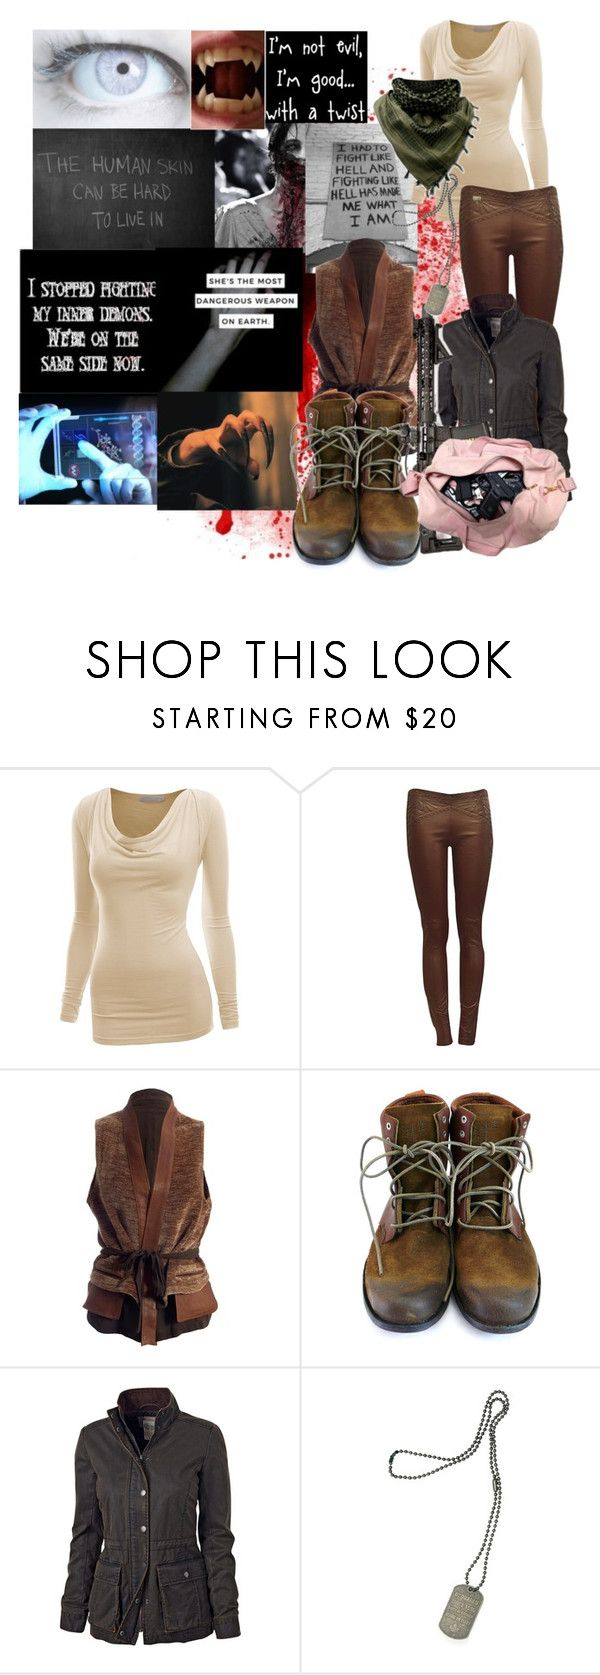 """Original character seven"" by lrdart ❤ liked on Polyvore featuring Doublju, Joveeba, DAMIR DOMA, Timberland Boot Company, Fat Face and Dsquared2"